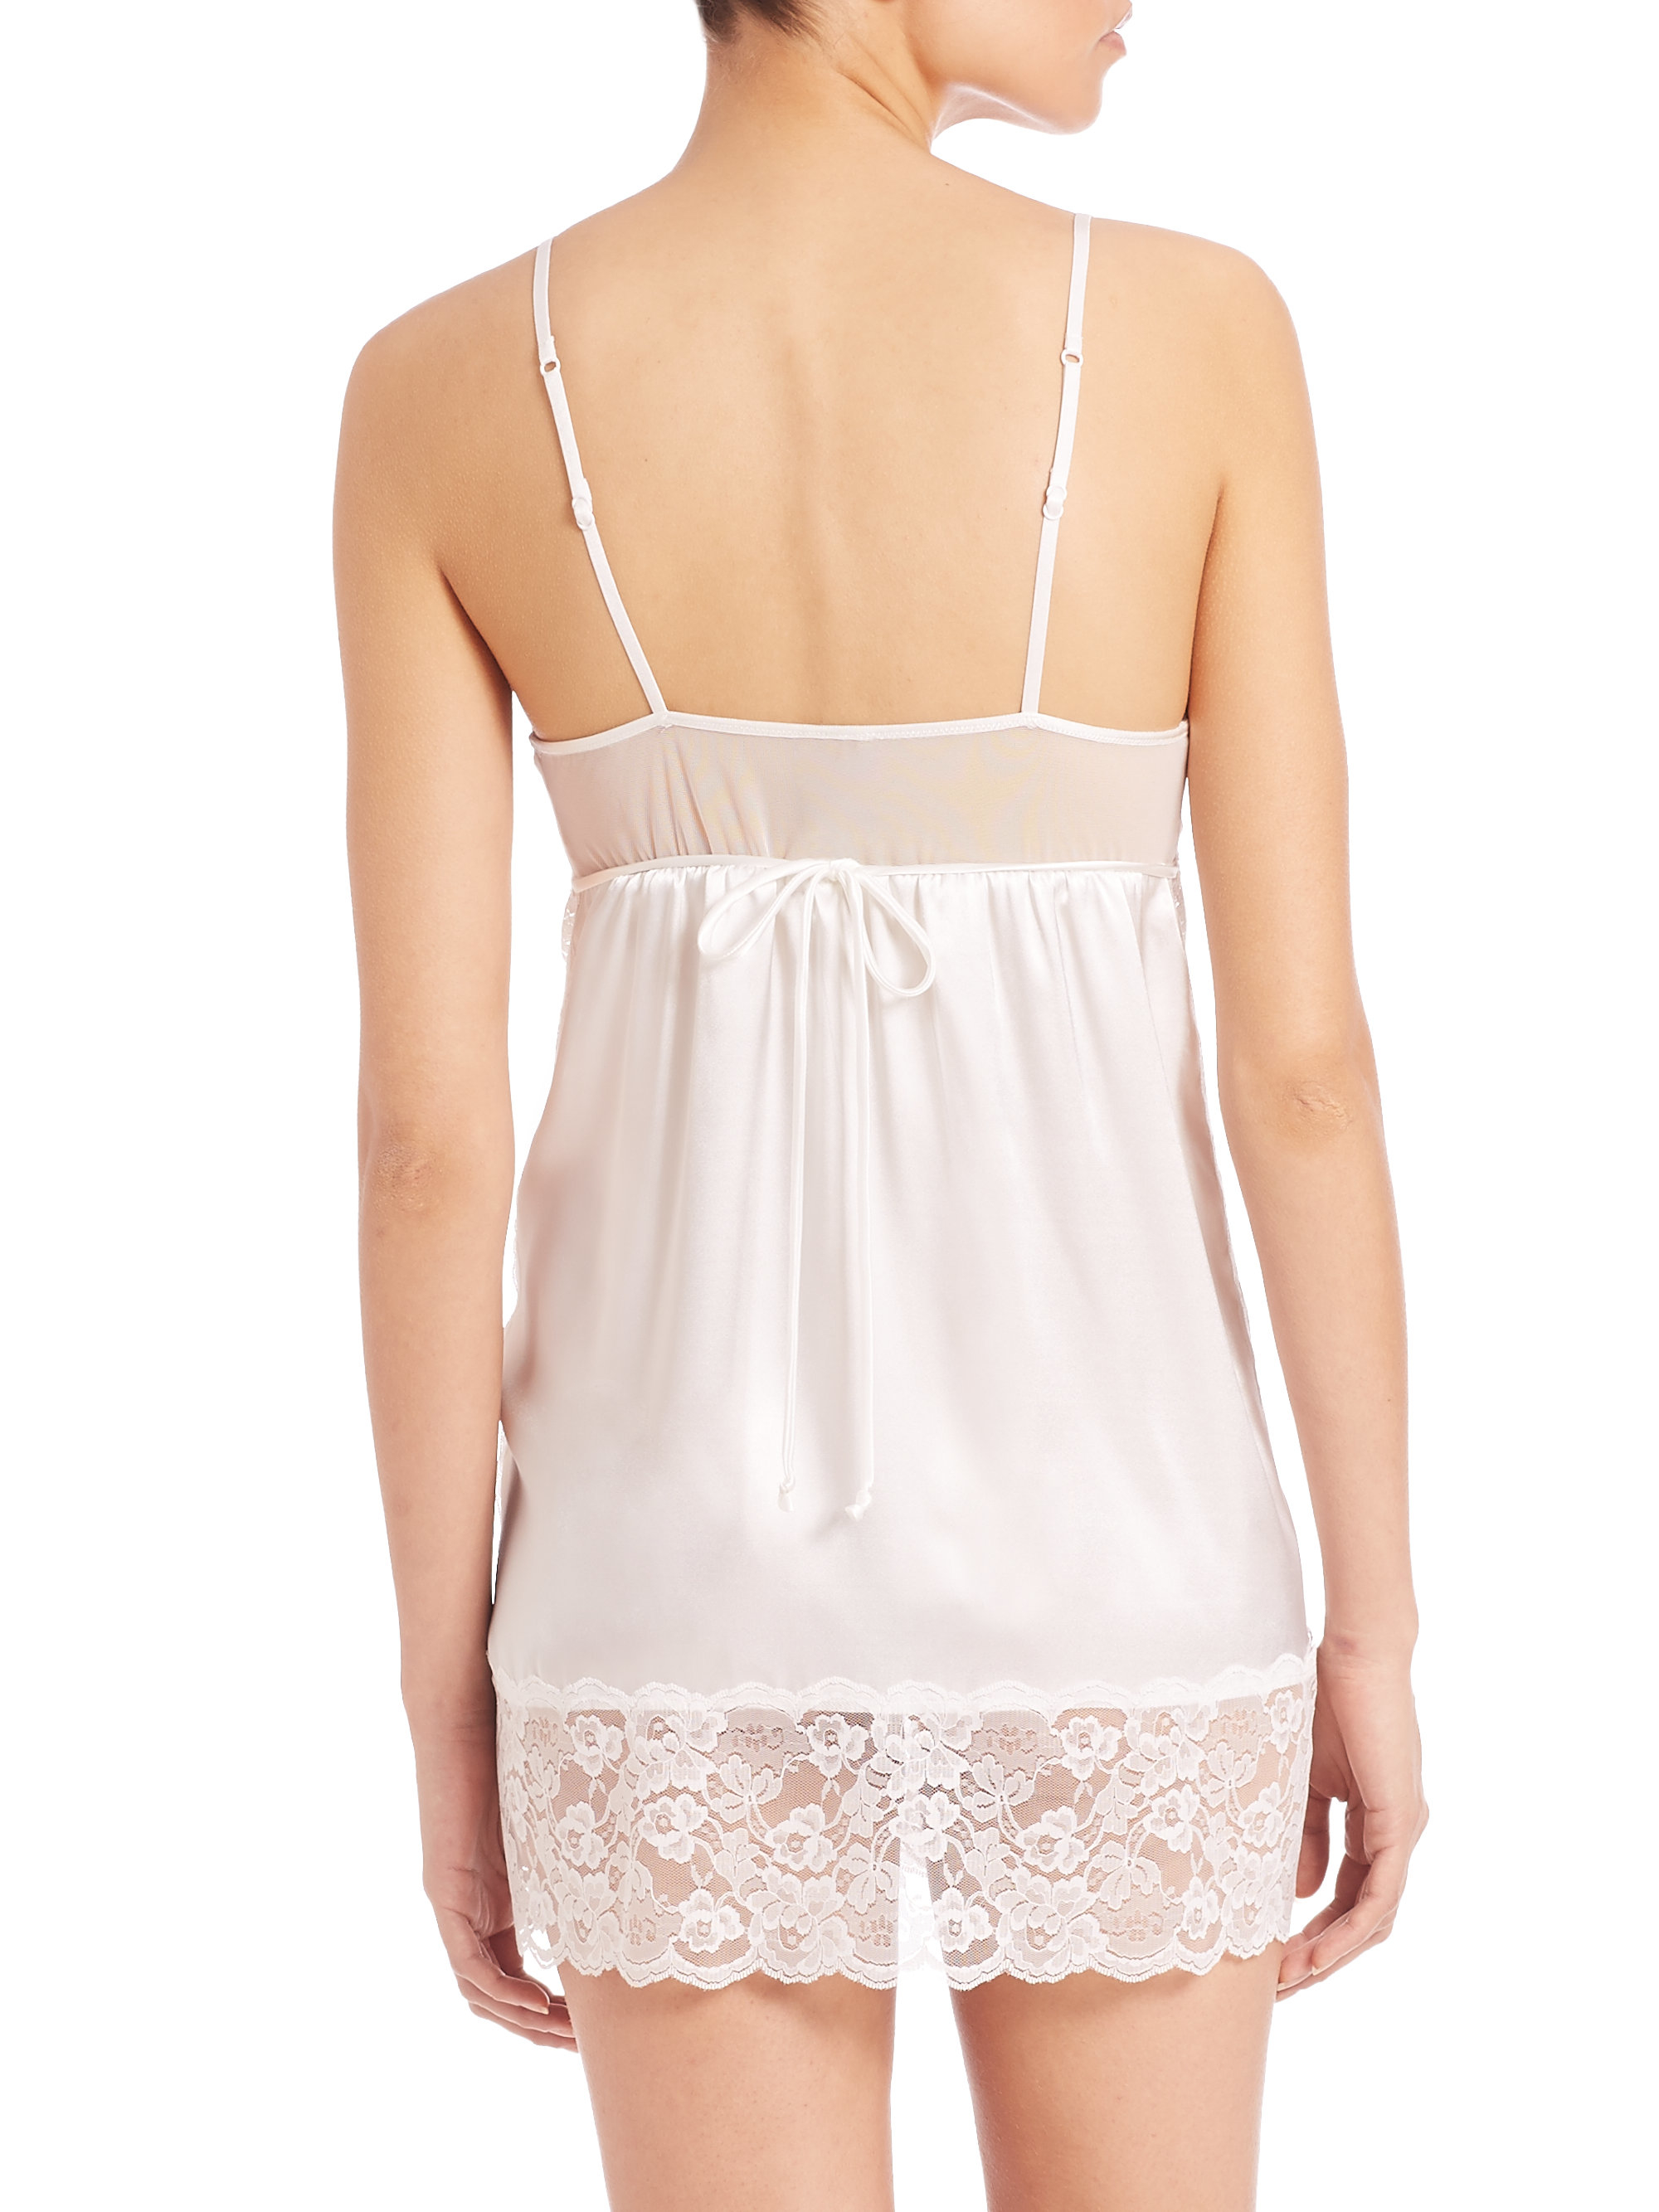 Lyst - In Bloom Lace-inset Satin Chemise in White 24b6cb547